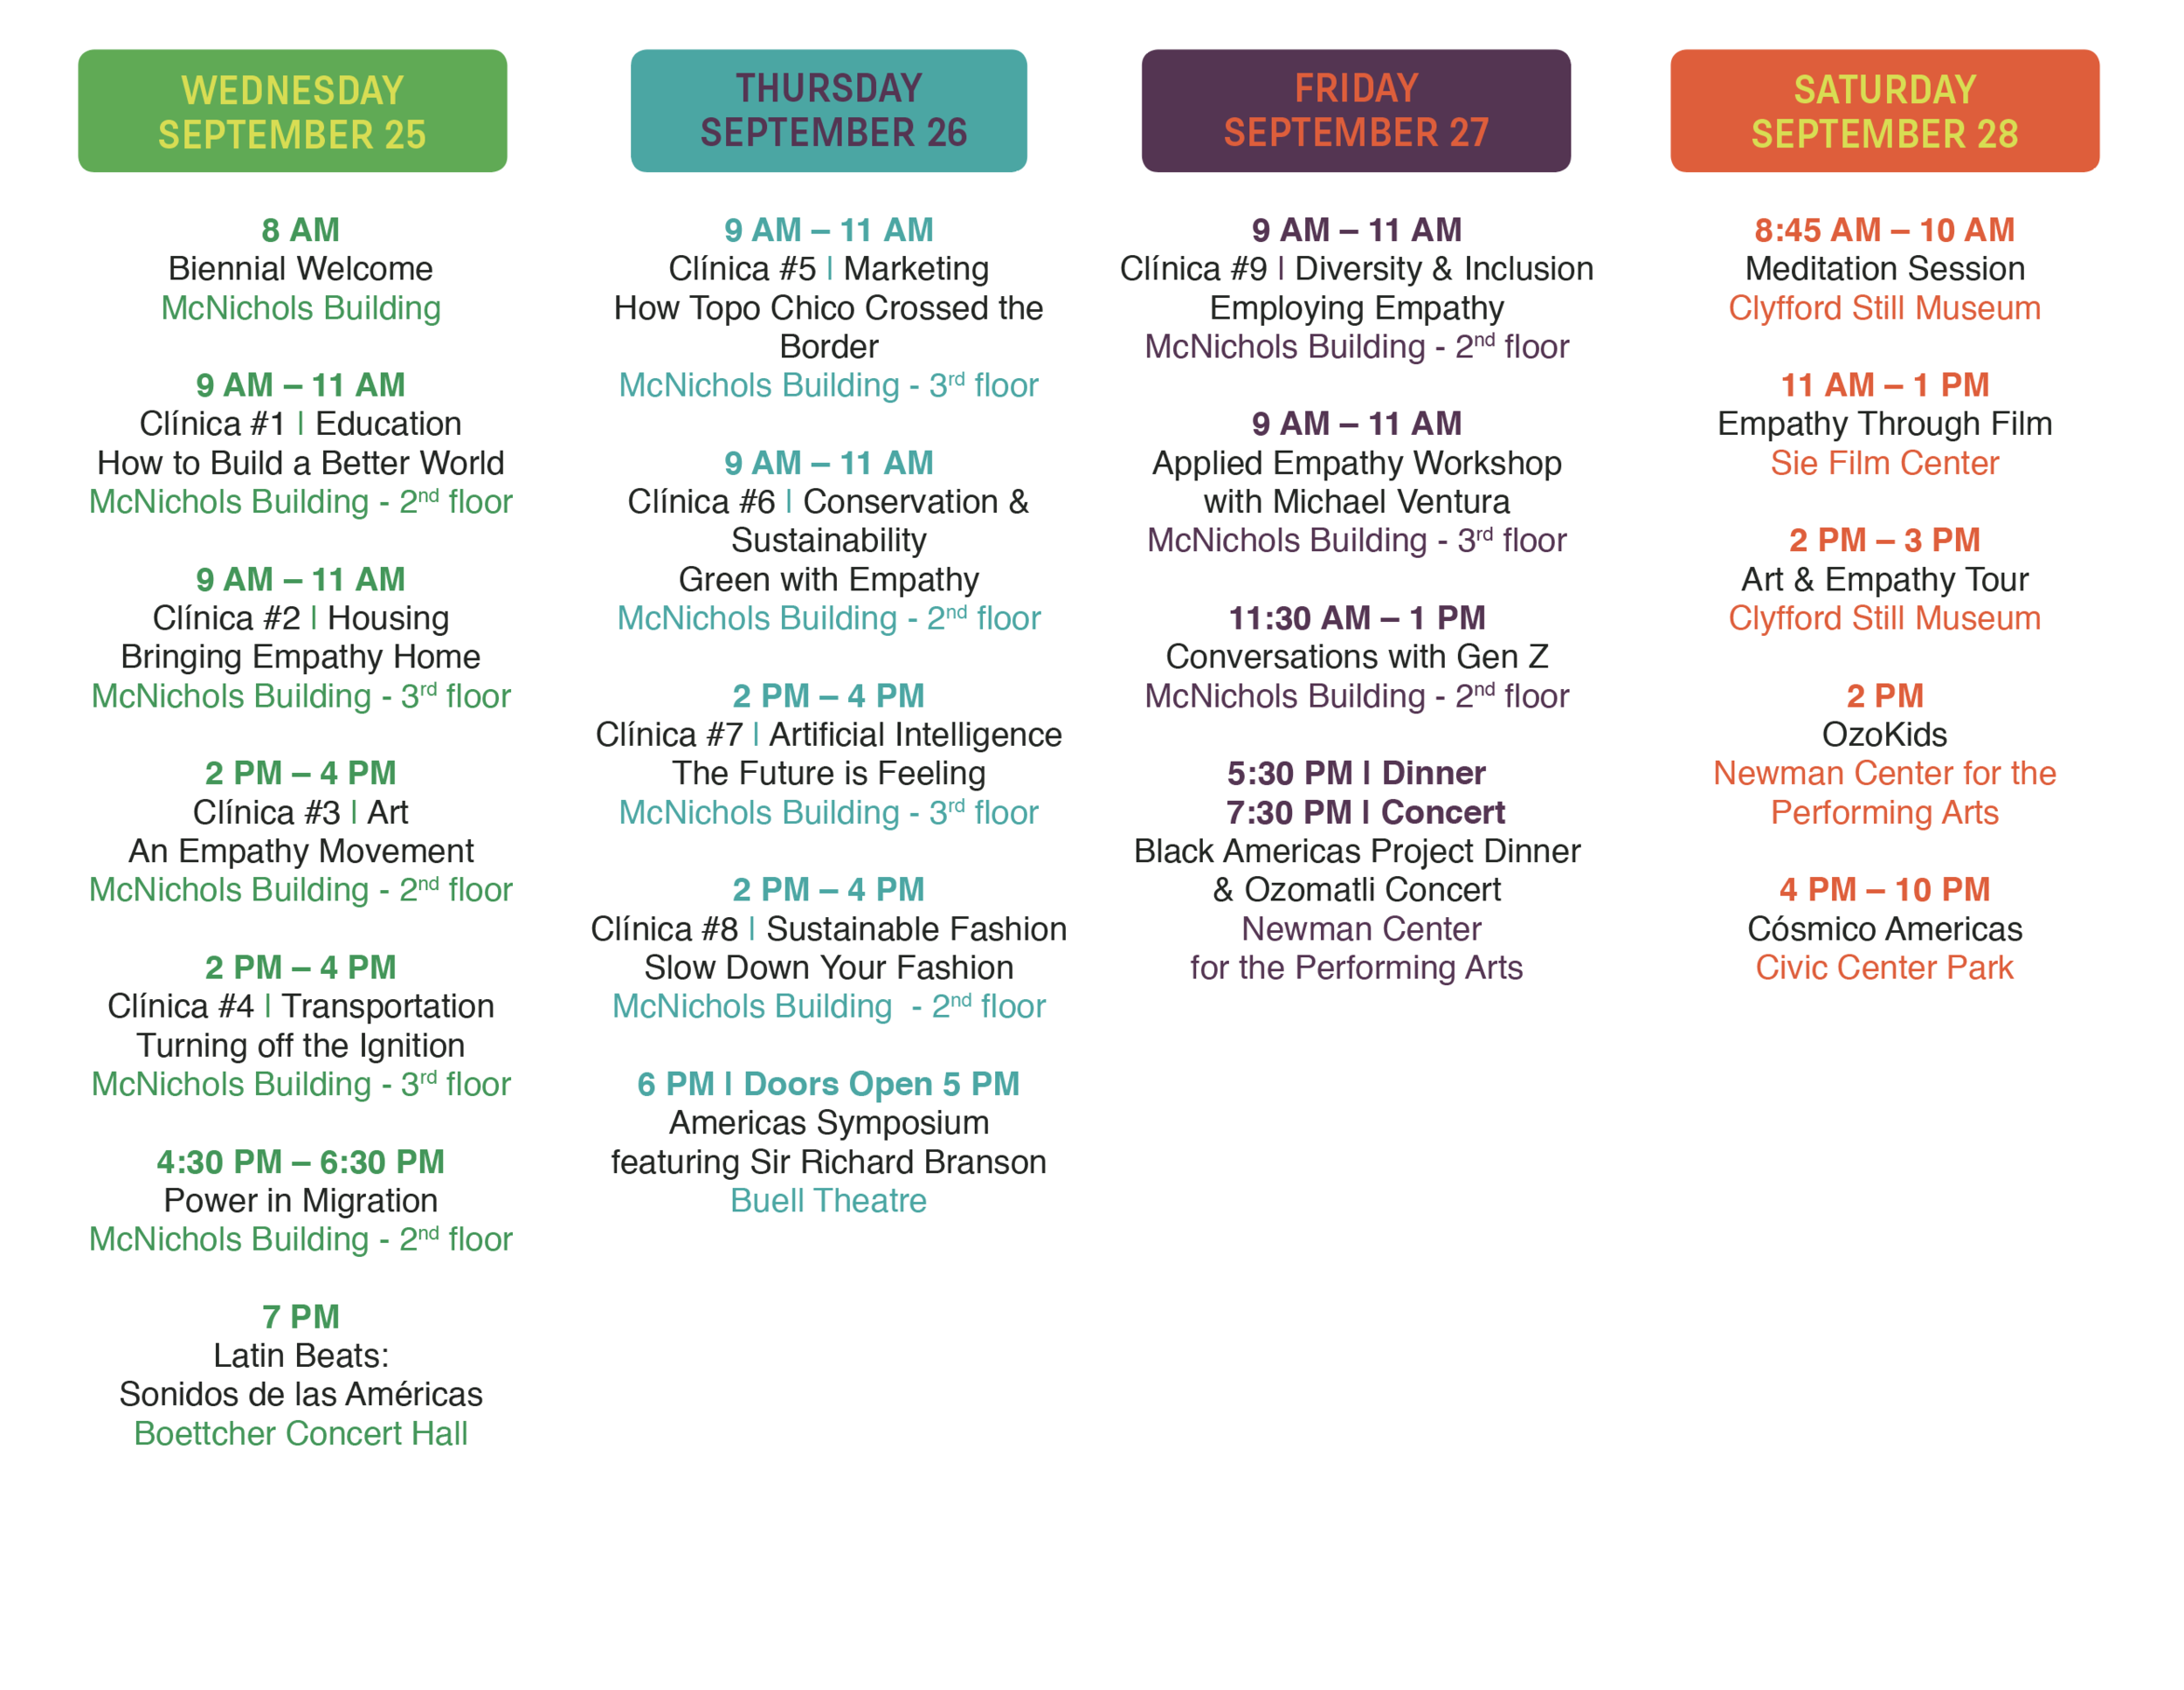 Updated Festival at a Glance 9_15.png